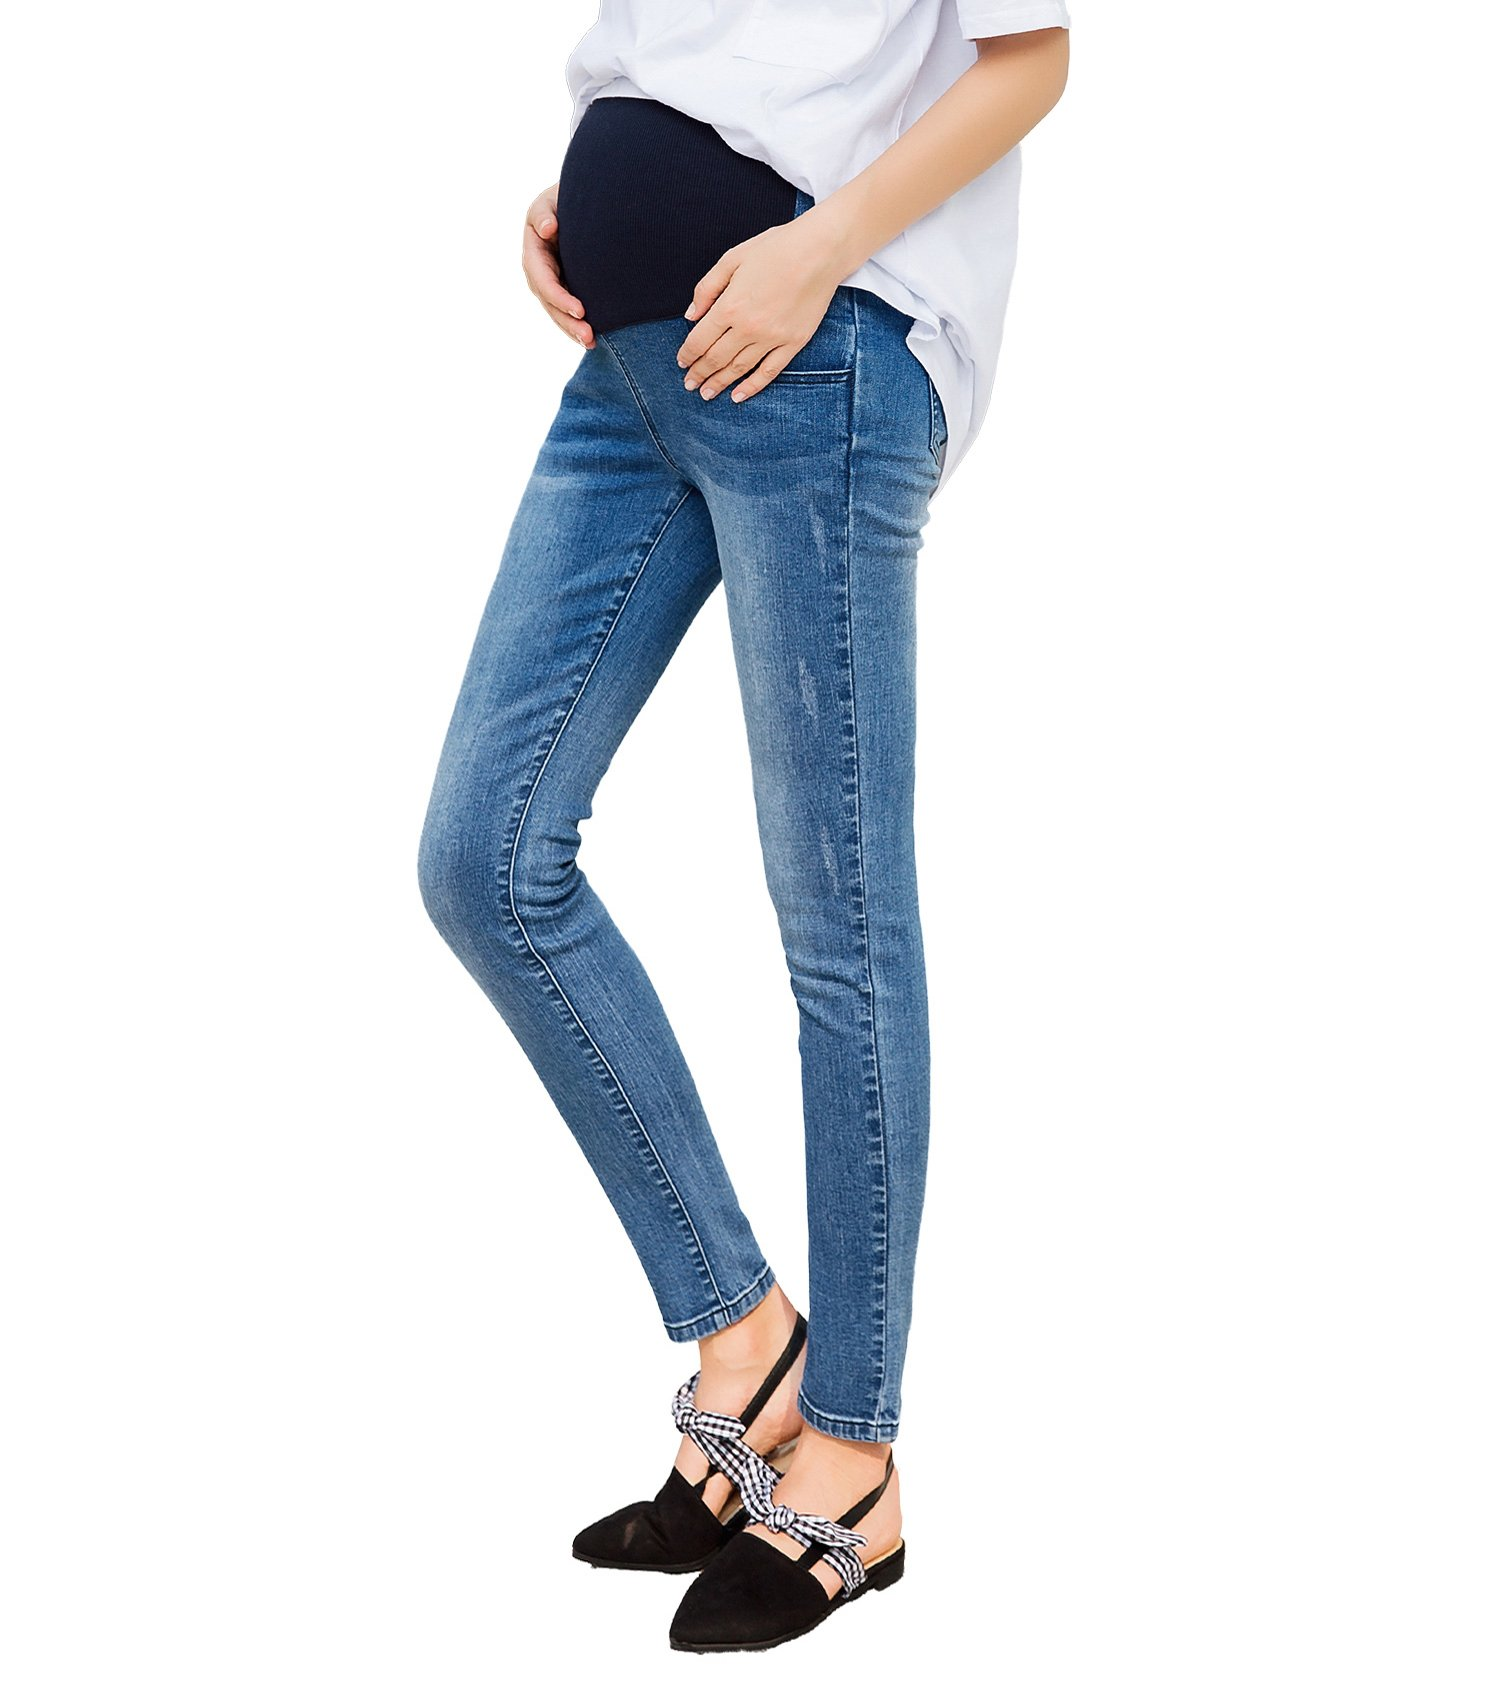 JOYNCLEON Maternity Skinny Jeans Pregnant Women Stretch Work Pants (Label L =US 2-4 Fit Hip 89cm/35.0'';Inseam 27.6'', Blue)